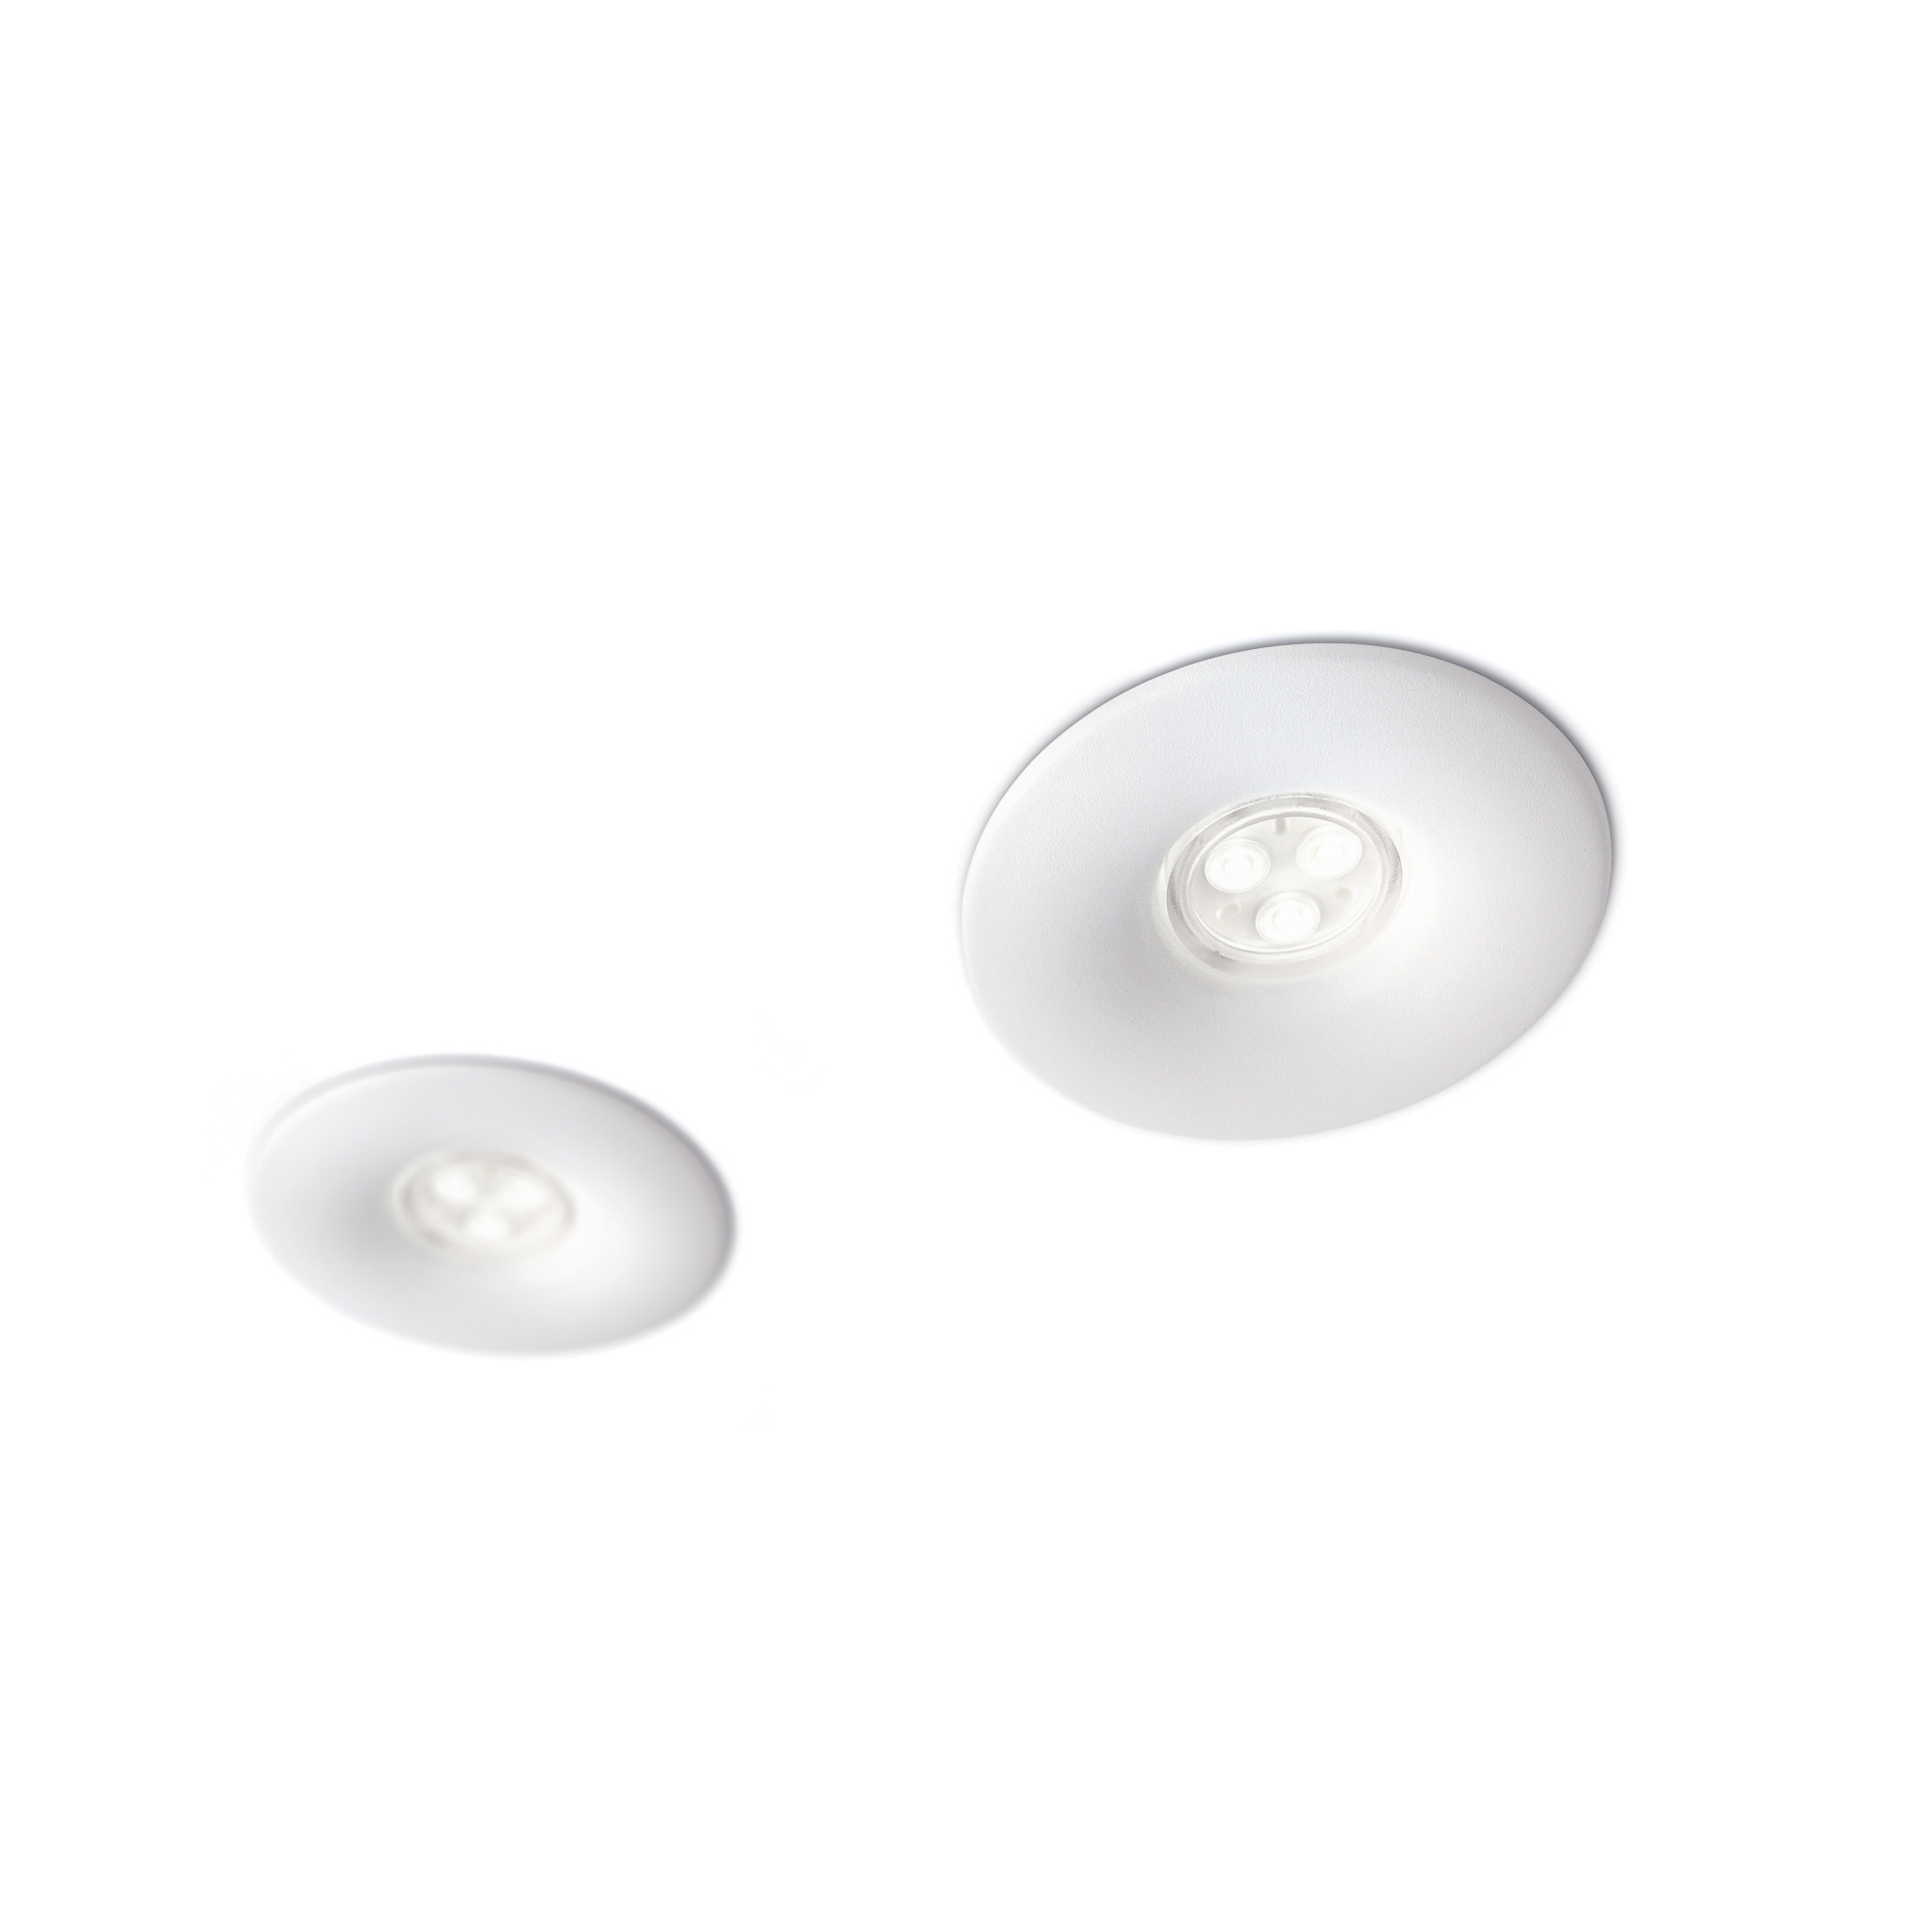 OUTLET OP=OP PEBBLE Ledino by Philips OUTDOOR Tuinlamp 16861-31-16